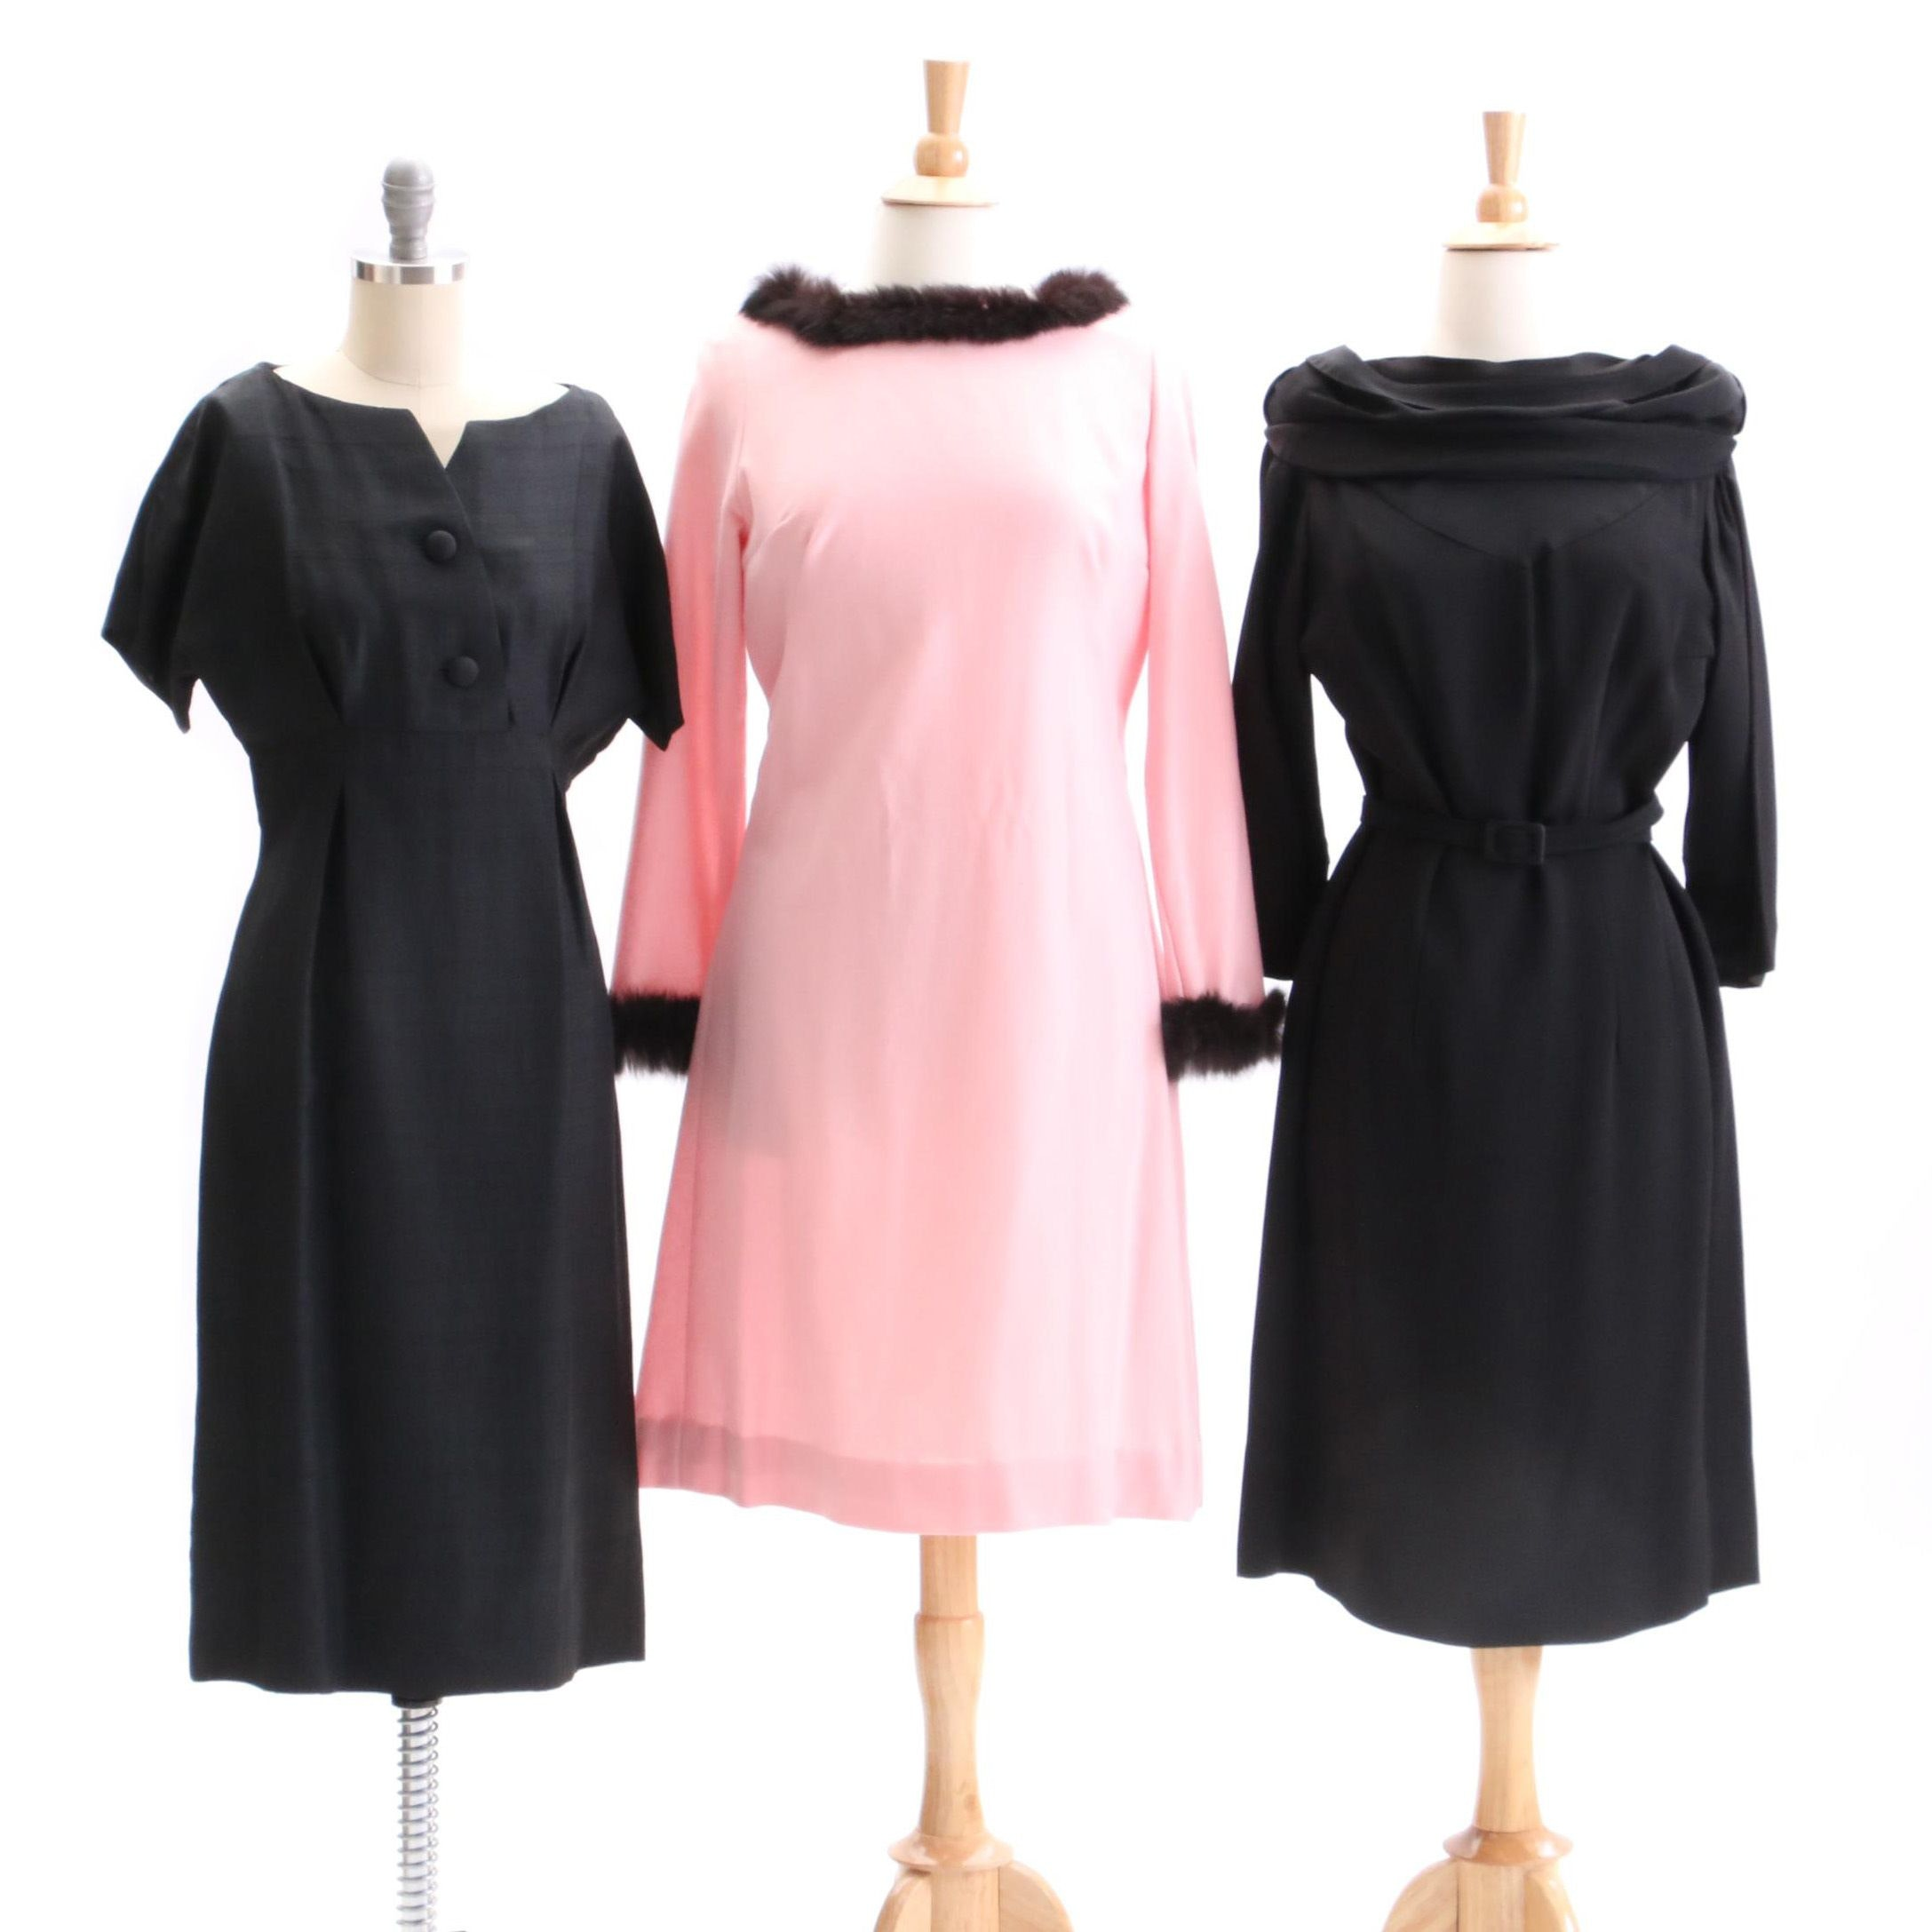 Circa 1960s Vintage L'aiglon Dress and Other Dresses